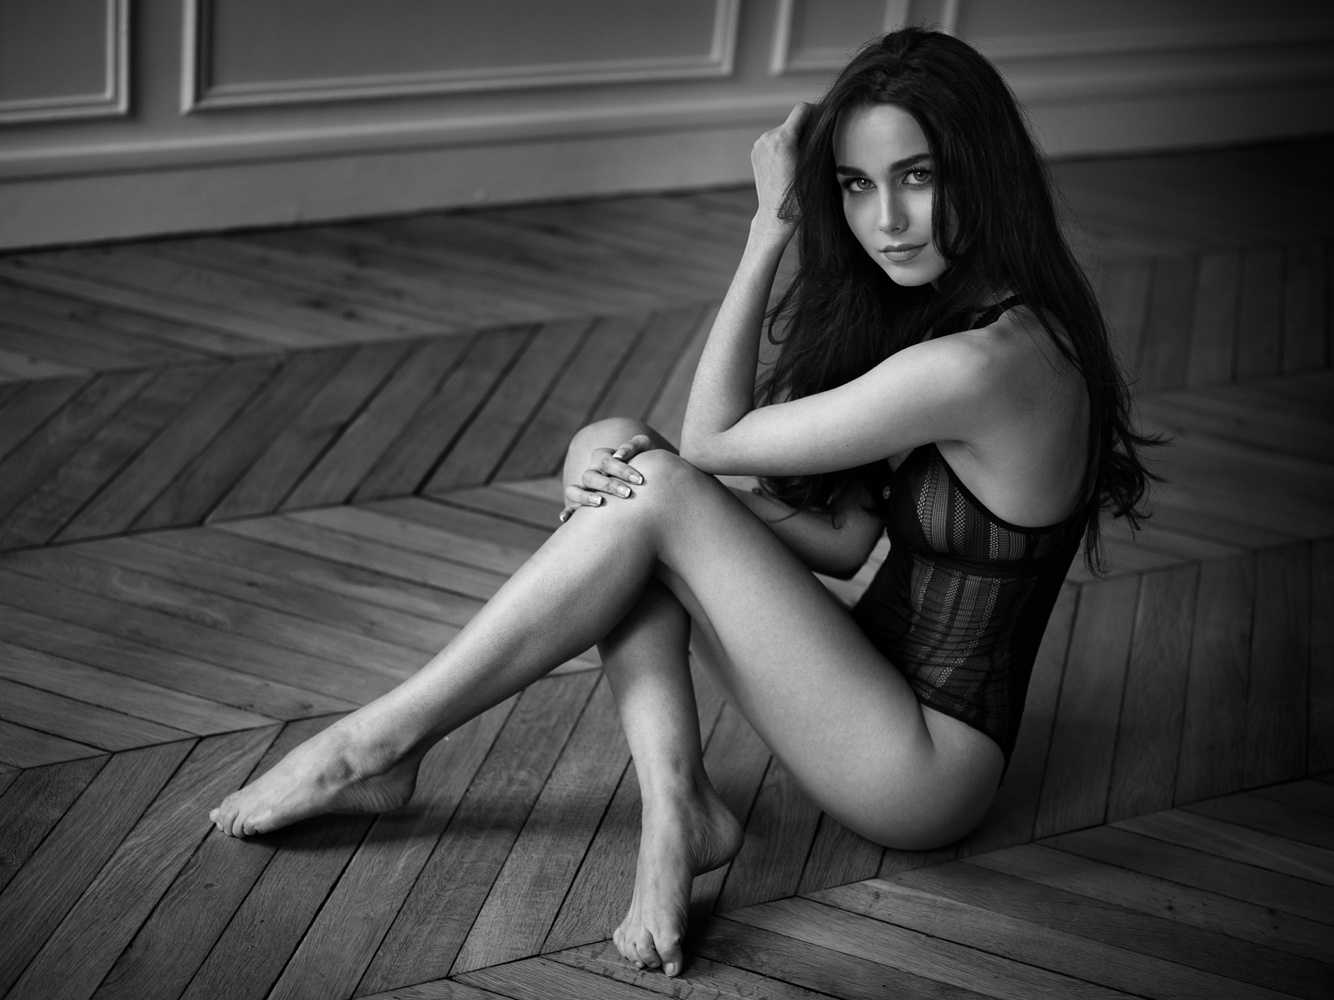 Juliette by Peter Coulson